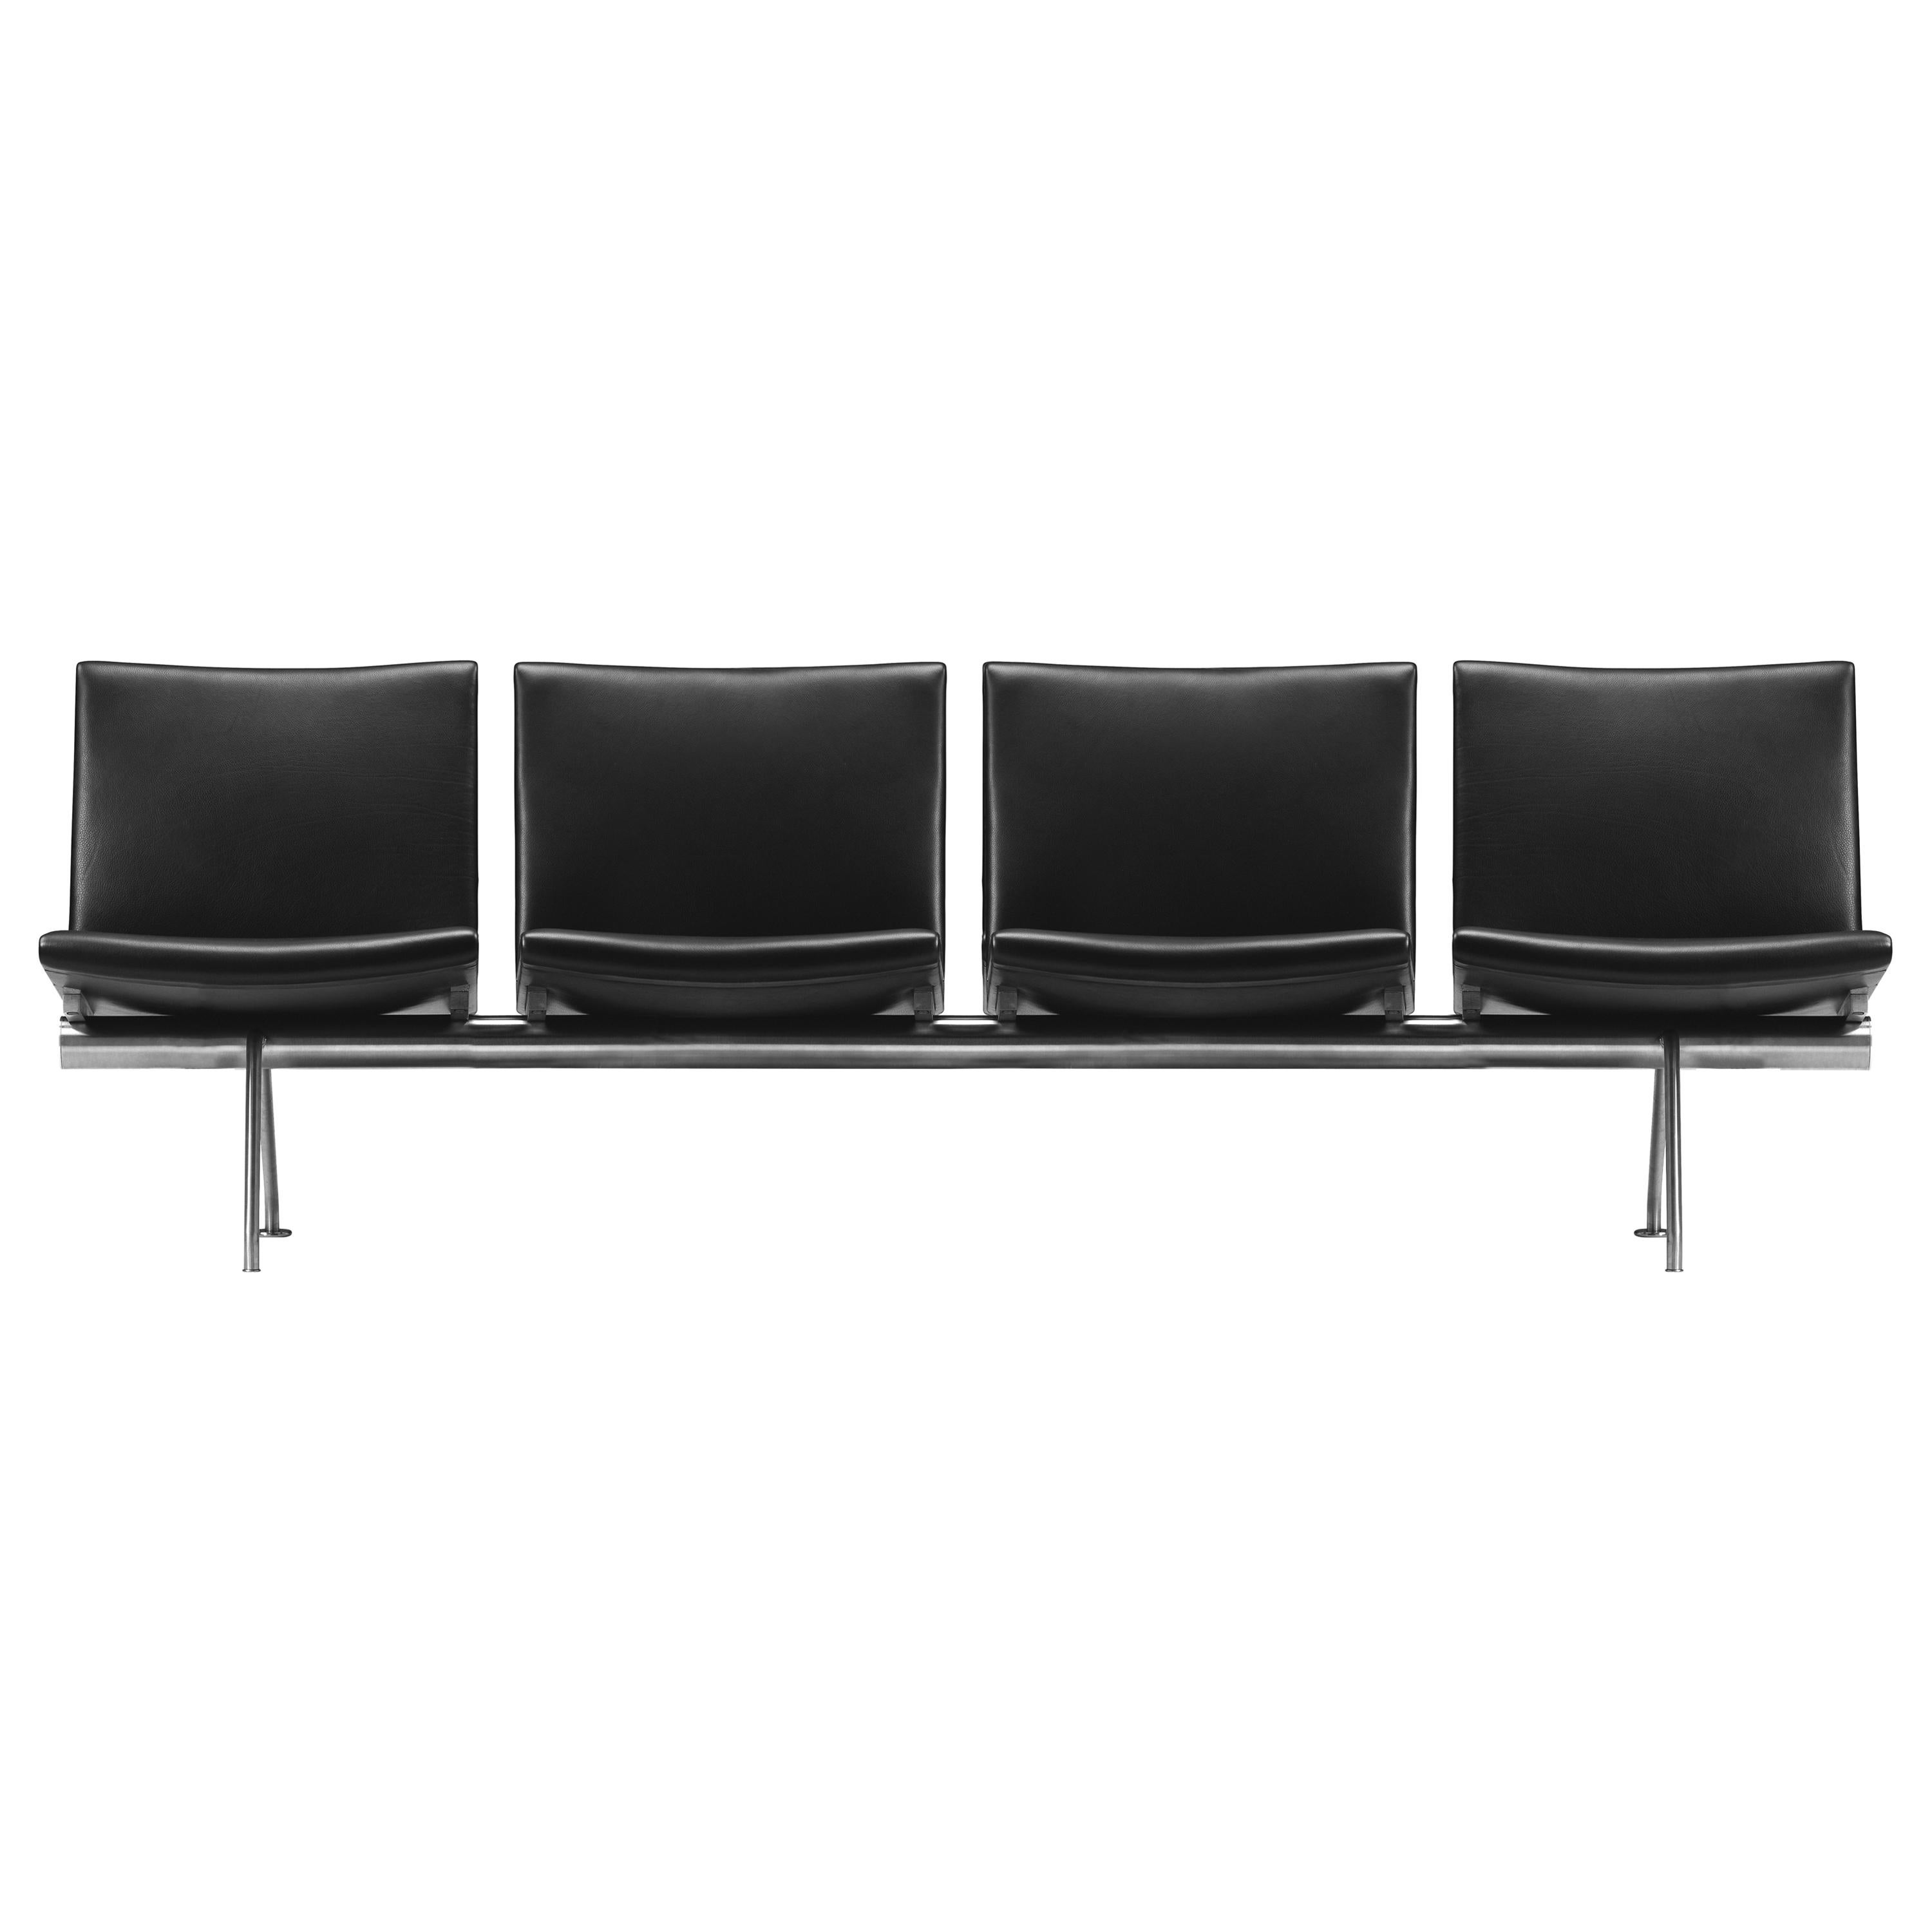 CH404 4-Seat Kastrup Sofa in Stainless Steel with Leather Seat by Hans J. Wegner